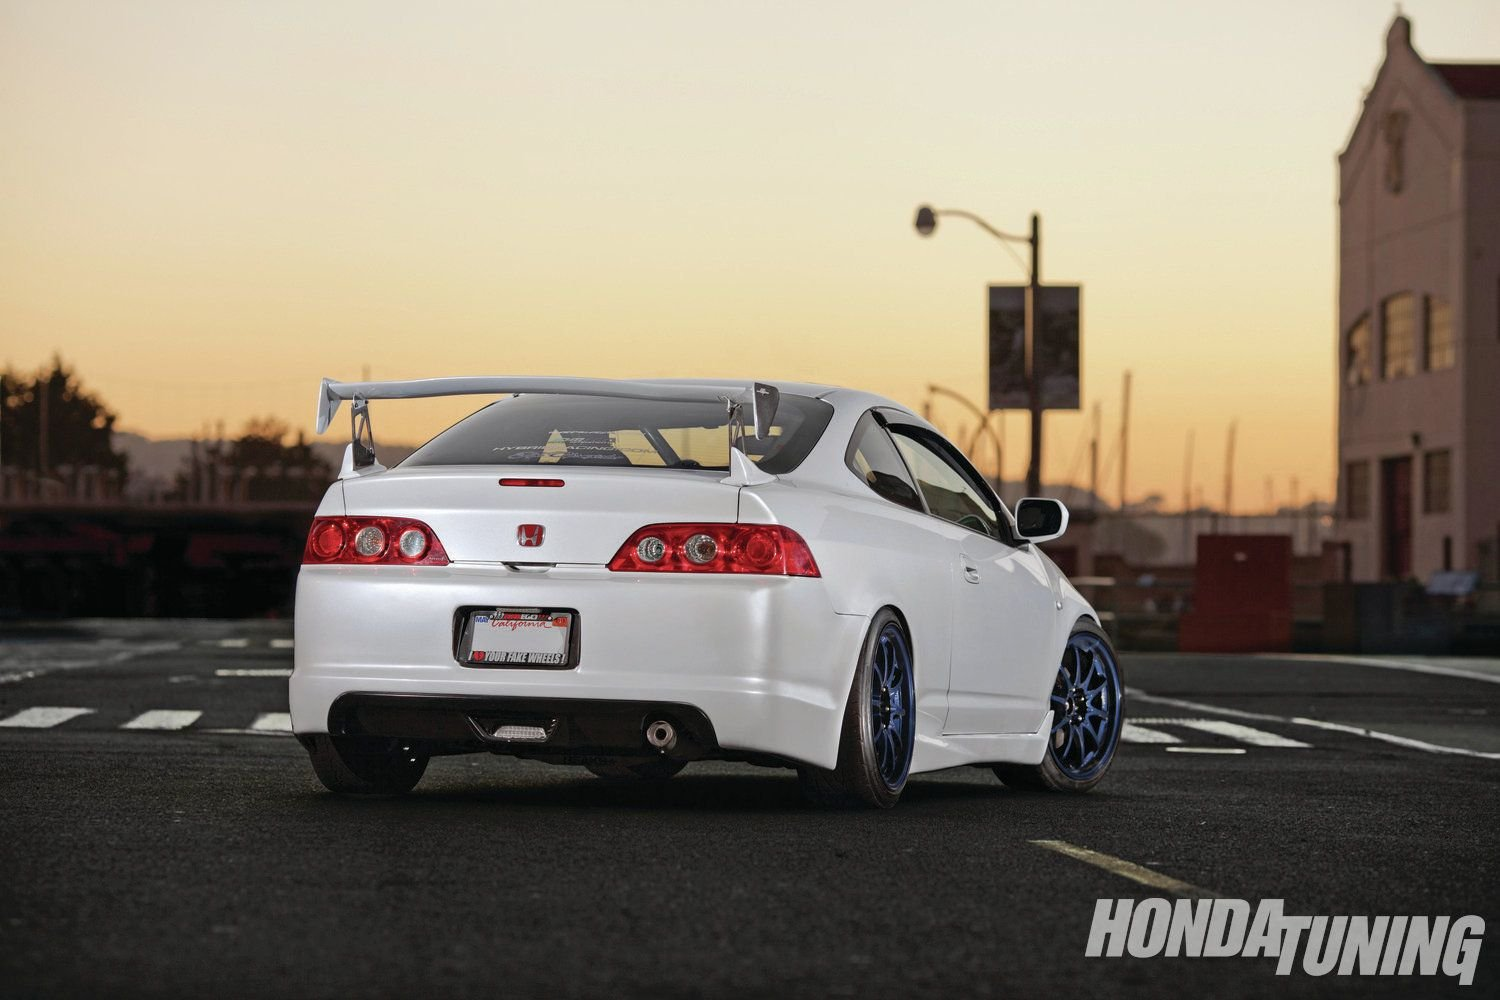 Acura Rsx Honda Coupe Tuning Cars Japan Wallpaper 1500x1000 502528 Wallpaperup